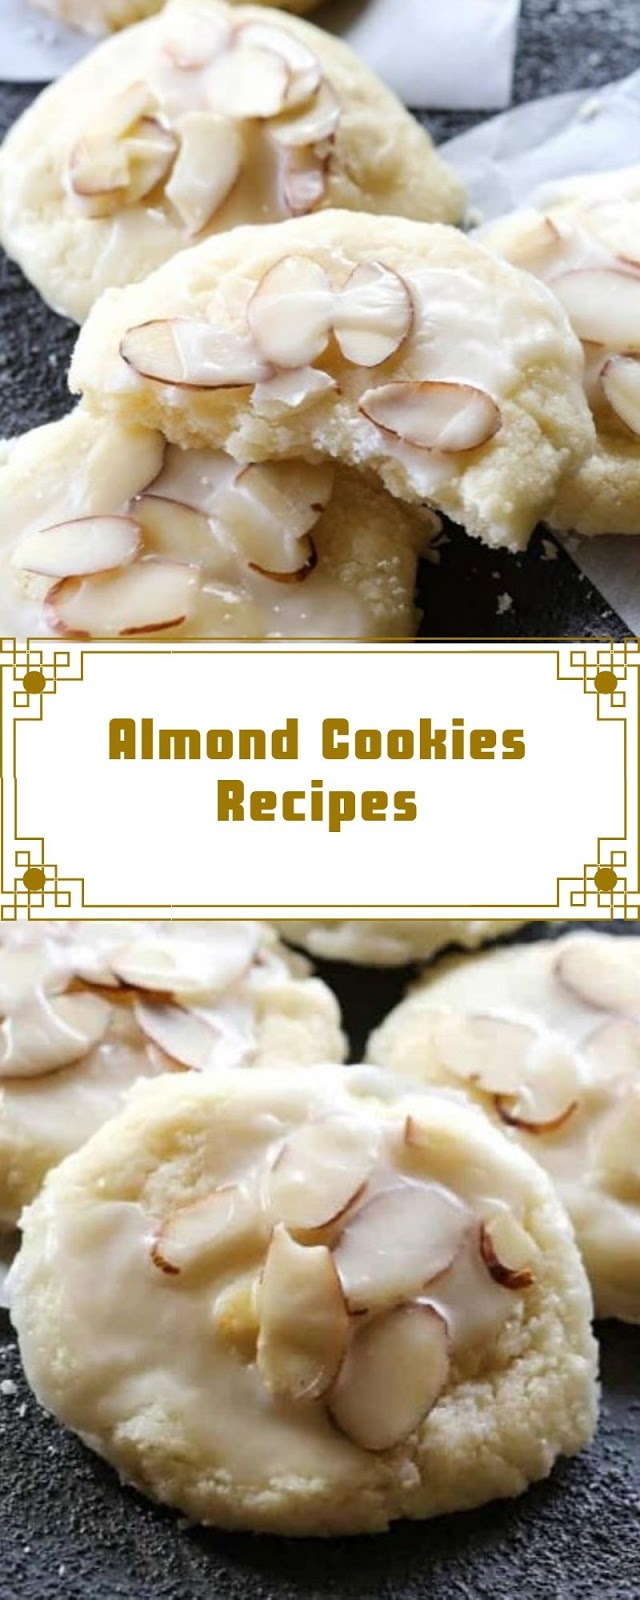 Almond Cookies Recipes